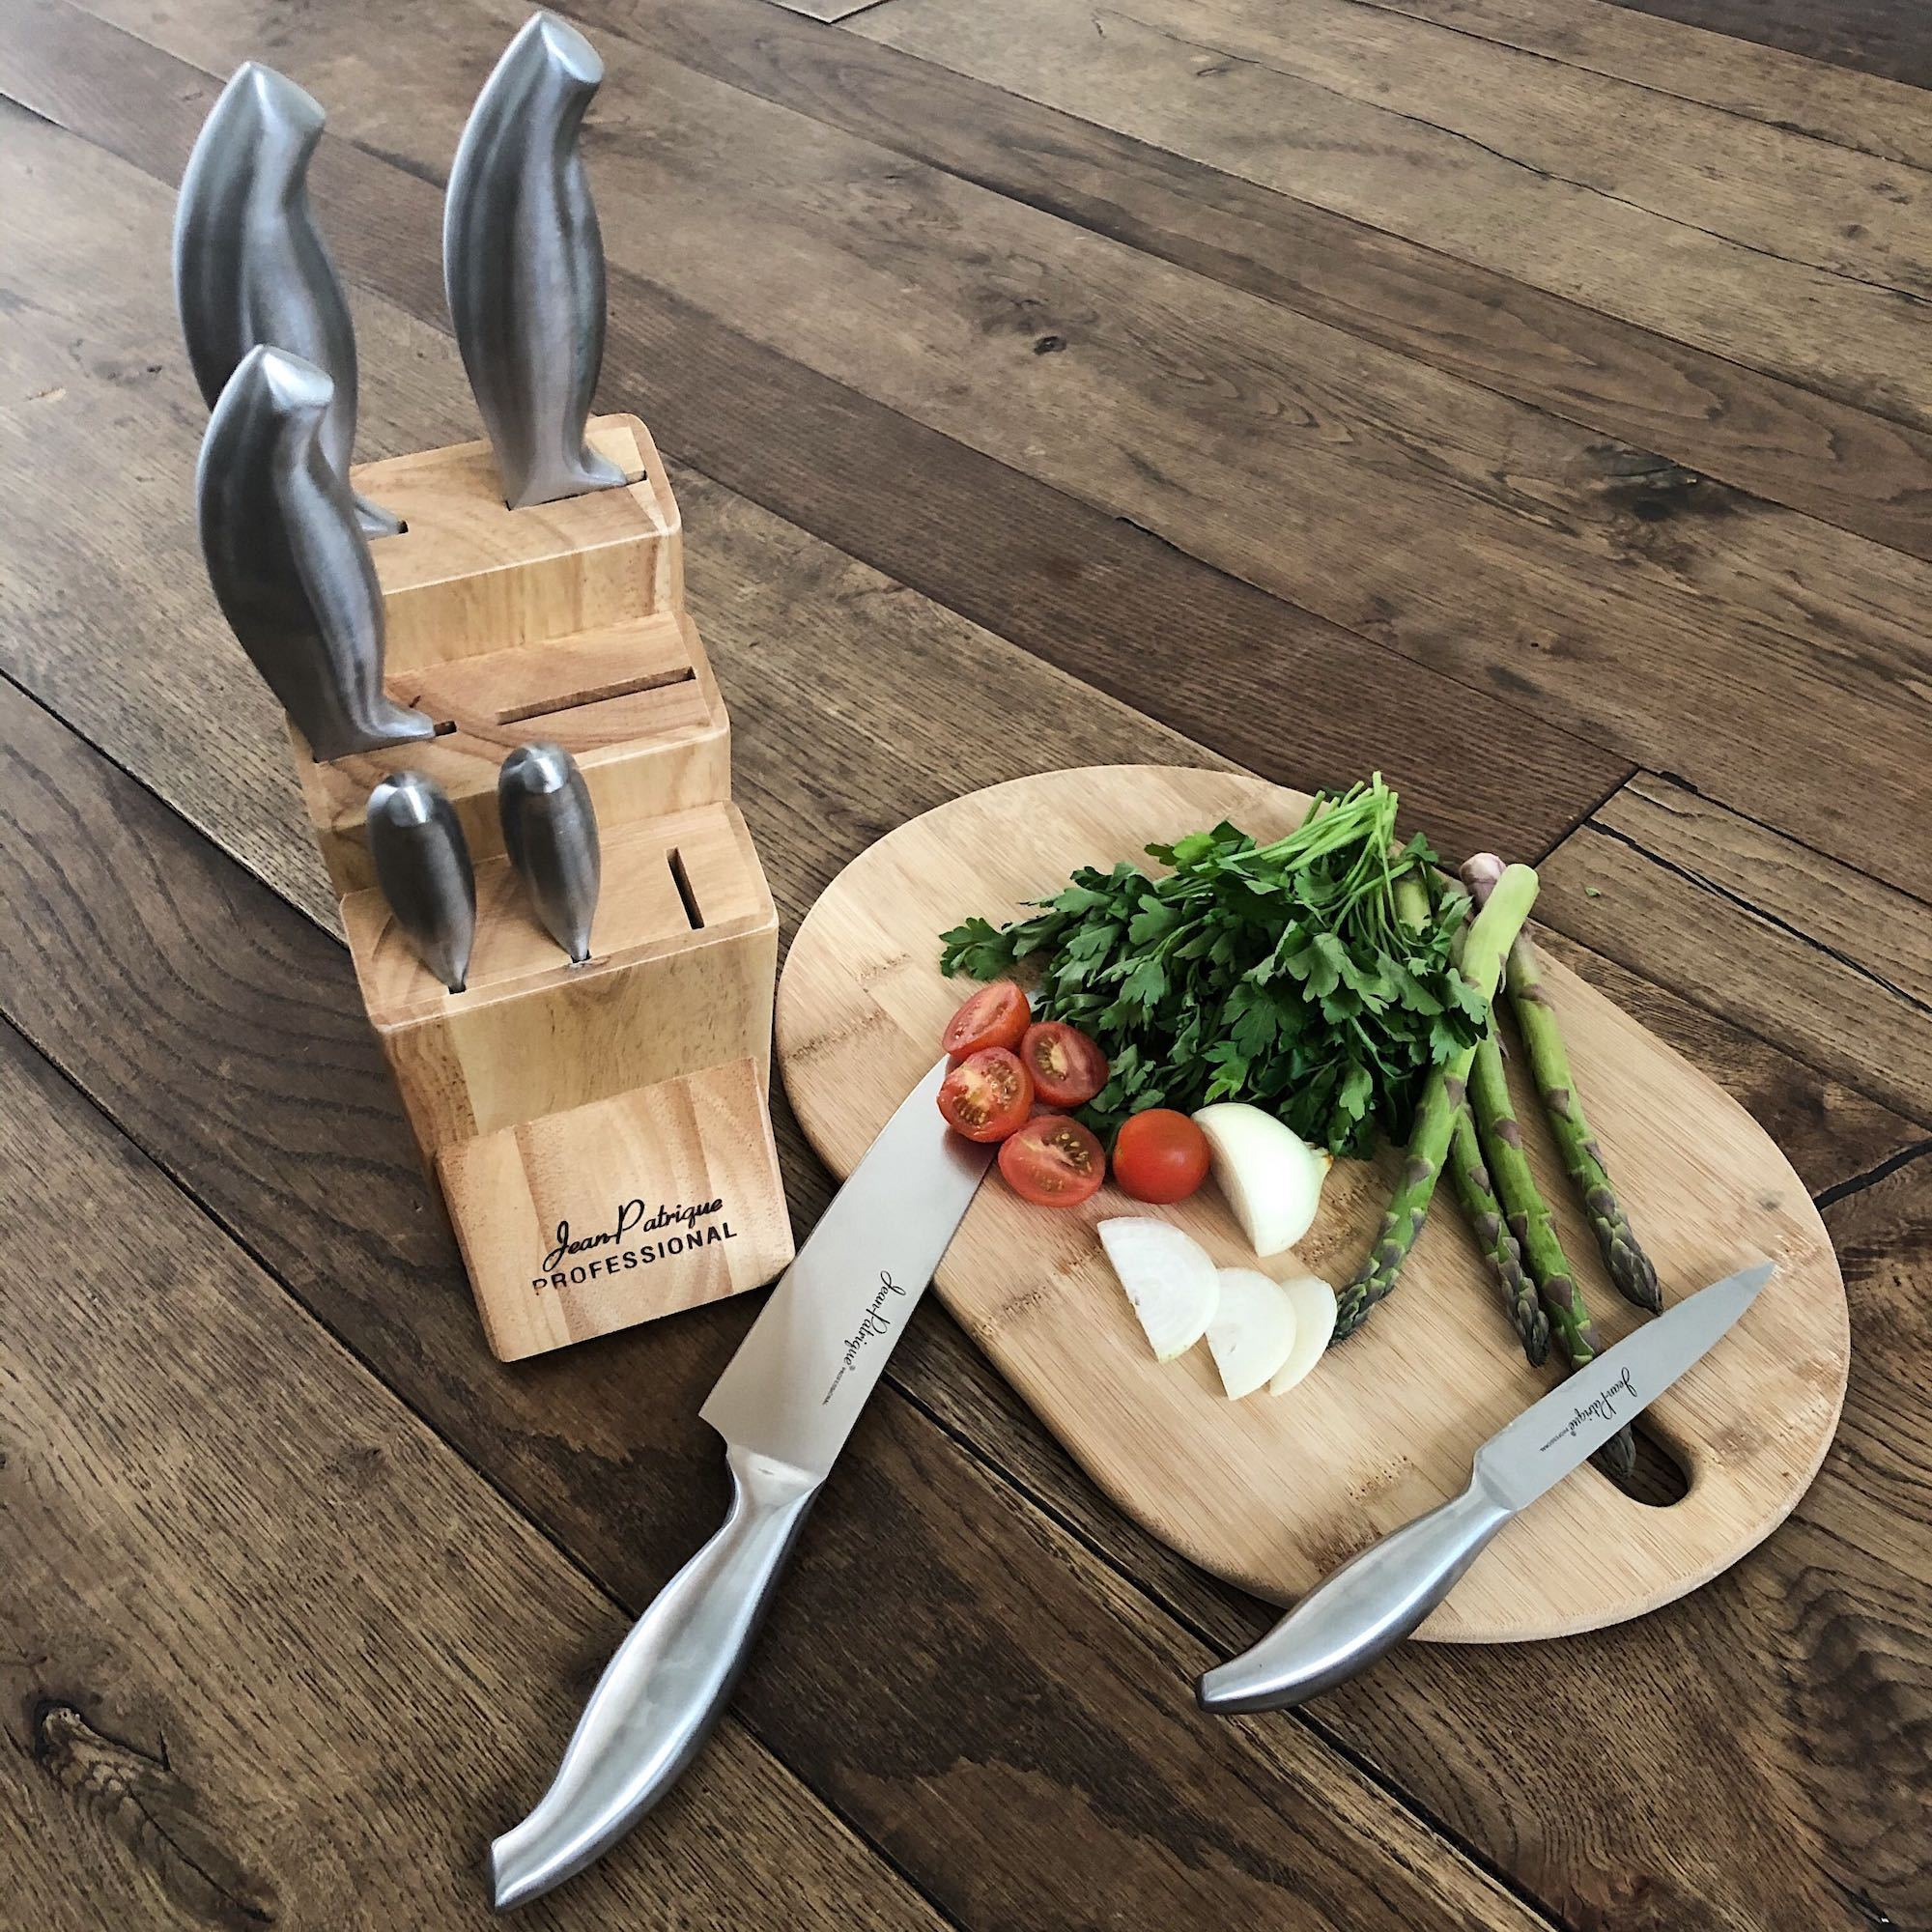 7 Piece Knife Set with Wooden Block